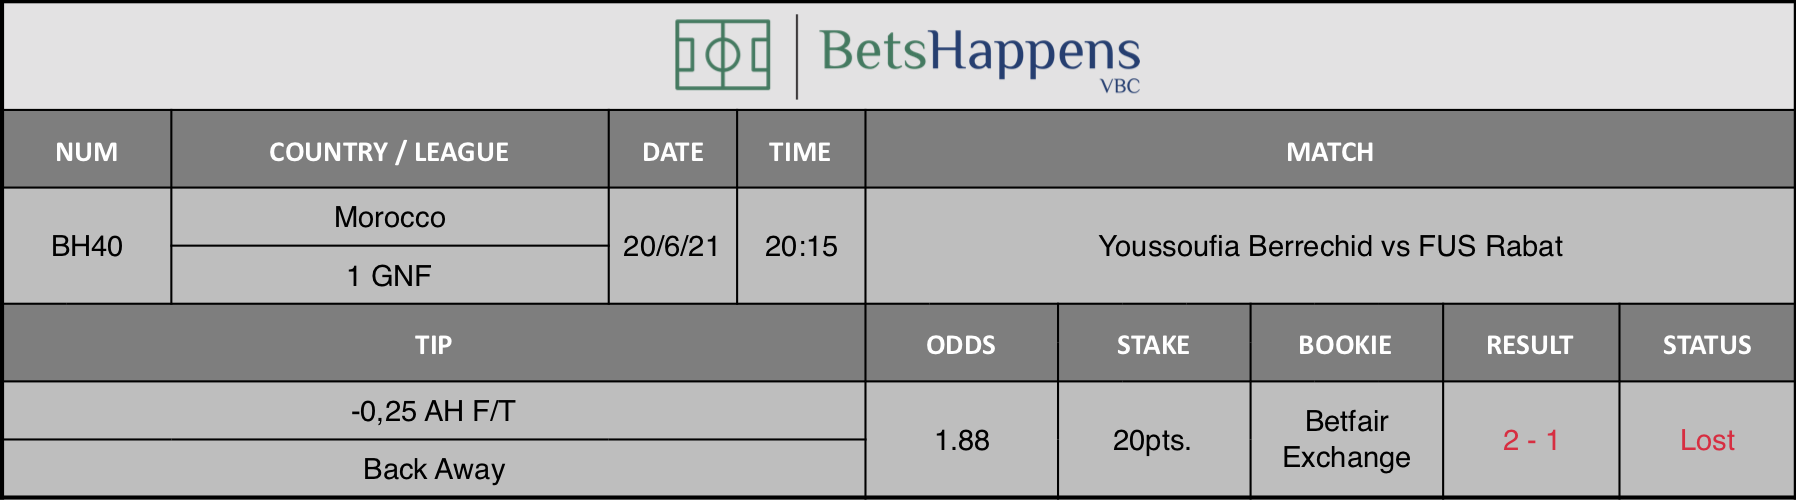 Results of our tip for the Youssoufia Berrechid vs FUS Rabat match -0,25 AH F/T Back Away is recommended.